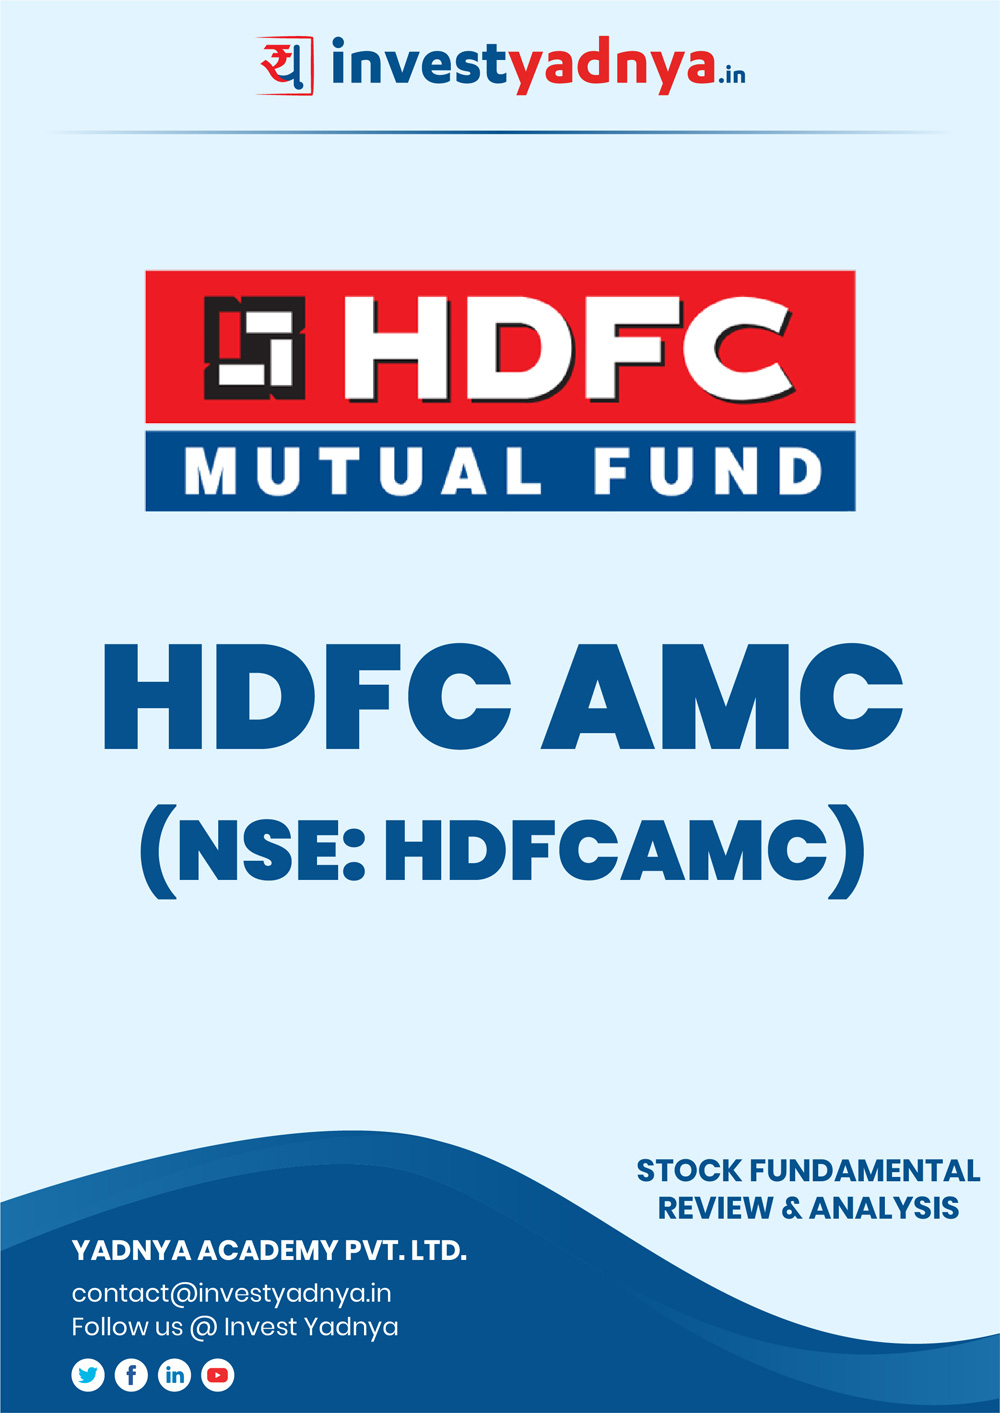 HDFC AMC Ltd. Company/Stock Review & Analysis based on Q42018-19 and FY2018-19 data. The book contains the Fundamental Analysis of the company considering both Quantitative (Financial) and Qualitative Parameters.